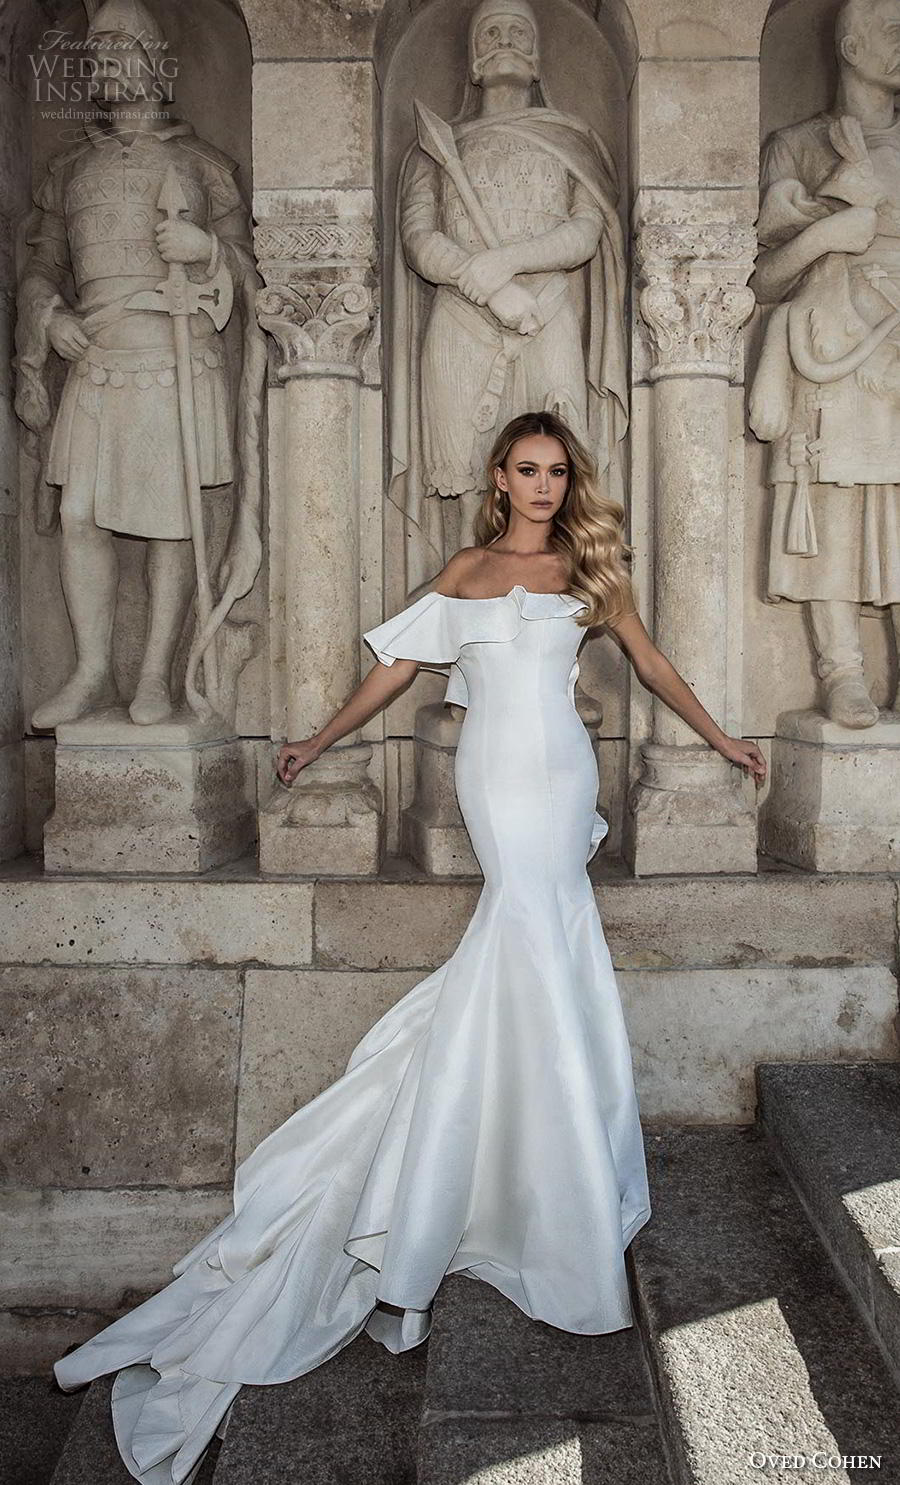 oved cohen 2018 bridal strapless asymmetrical neckline simple clean minimalist elegant fit and flare mermaid wedding dress chapel train (5) mv